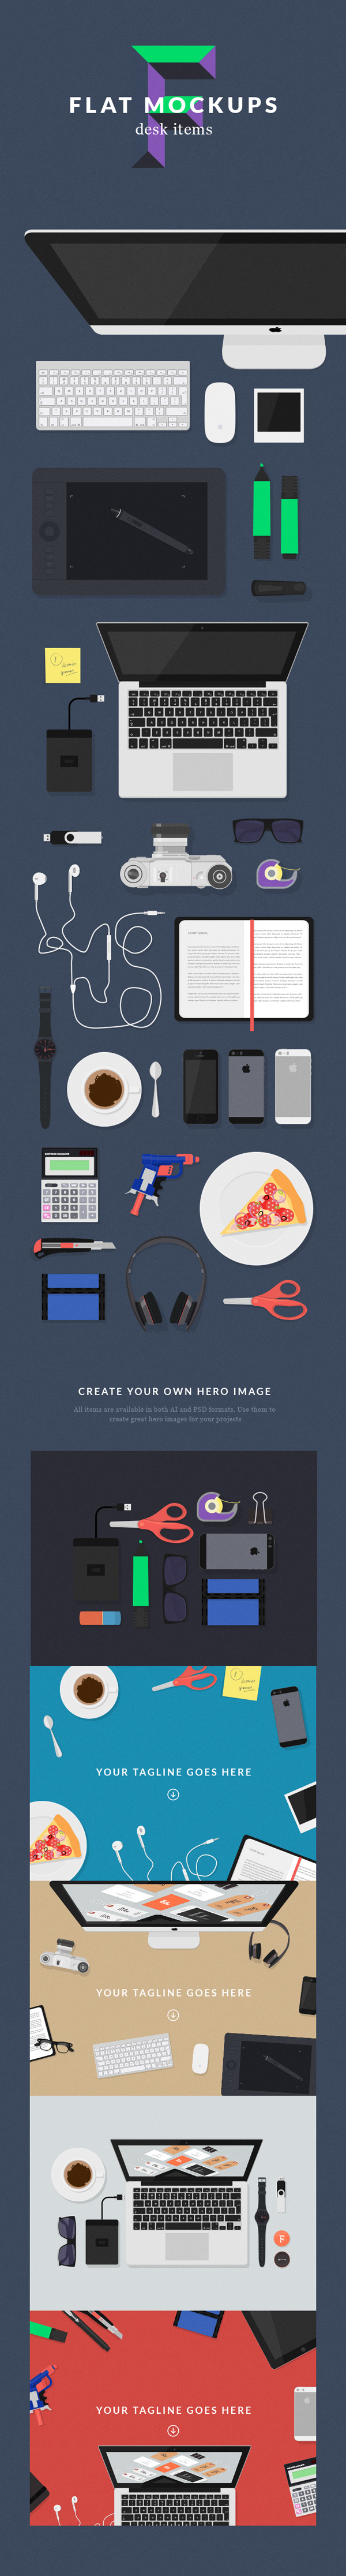 flat-mockups-desk-items